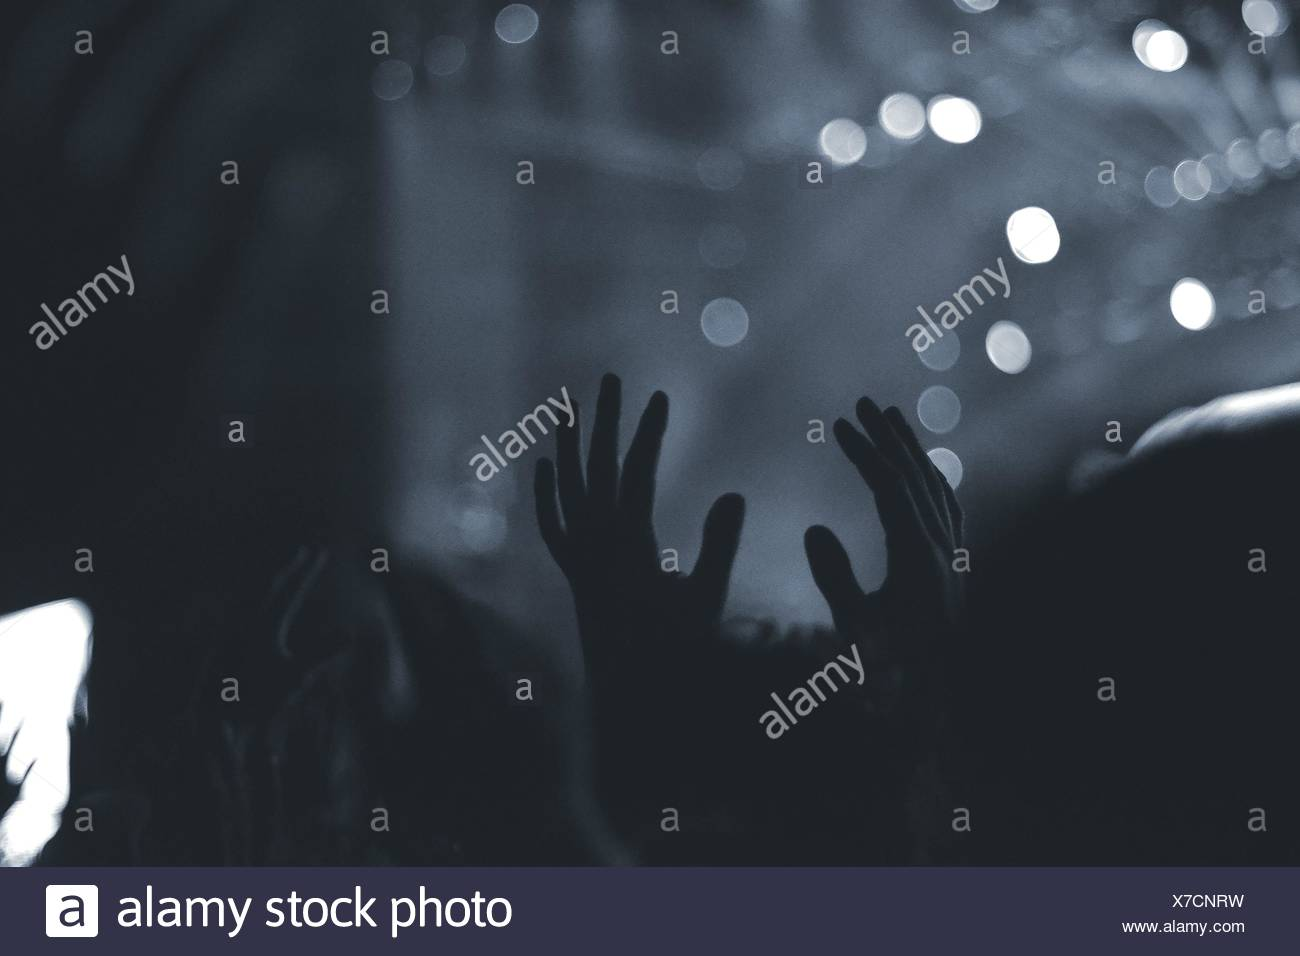 Crowd With Arms Raised In Music Concert - Stock Image